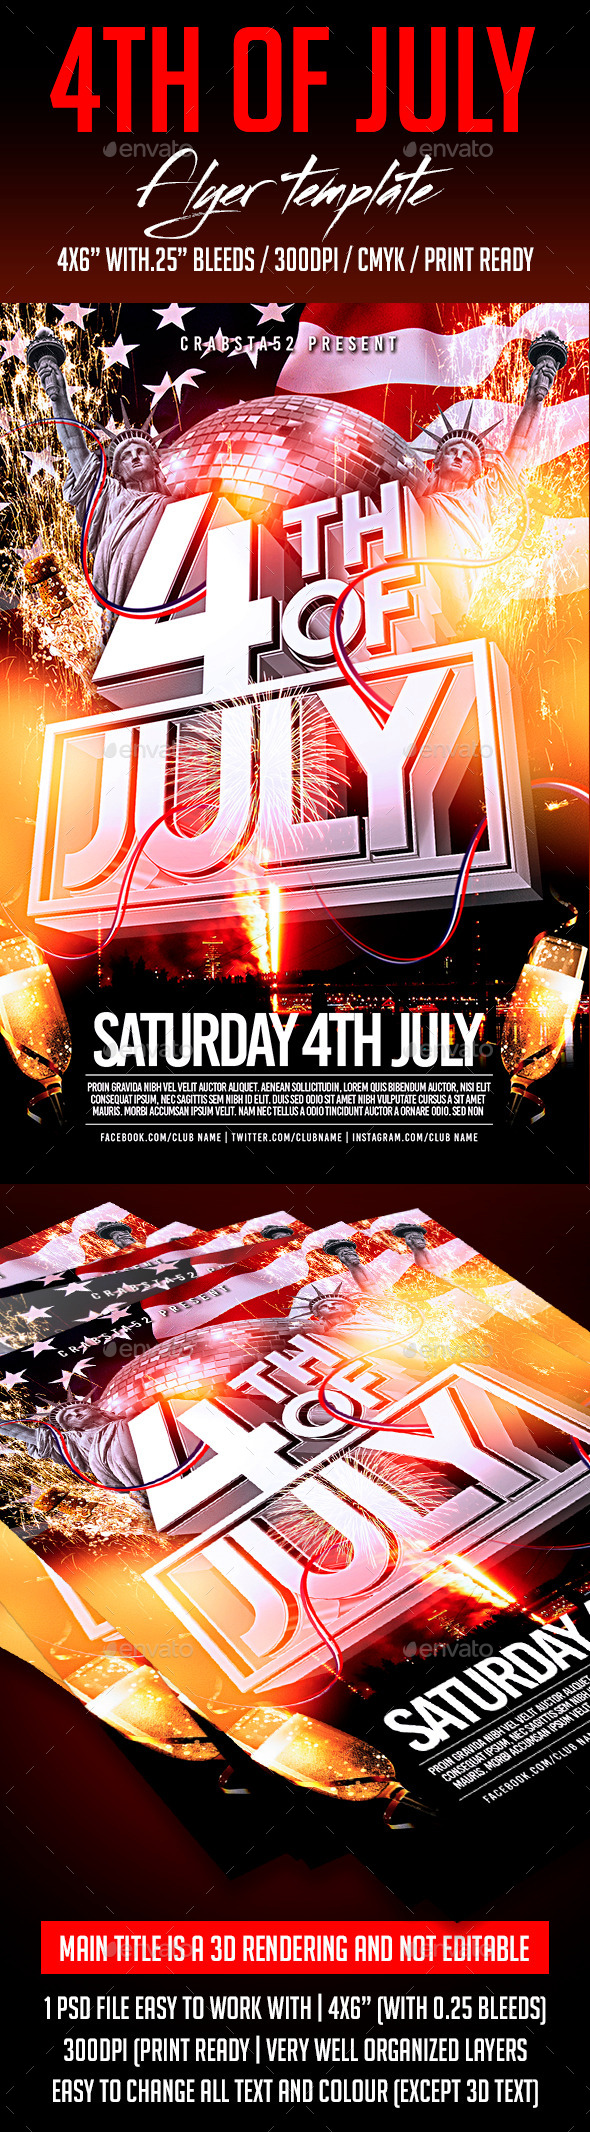 4th of july flyer template by crabsta52 graphicriver for 4th of july menu template